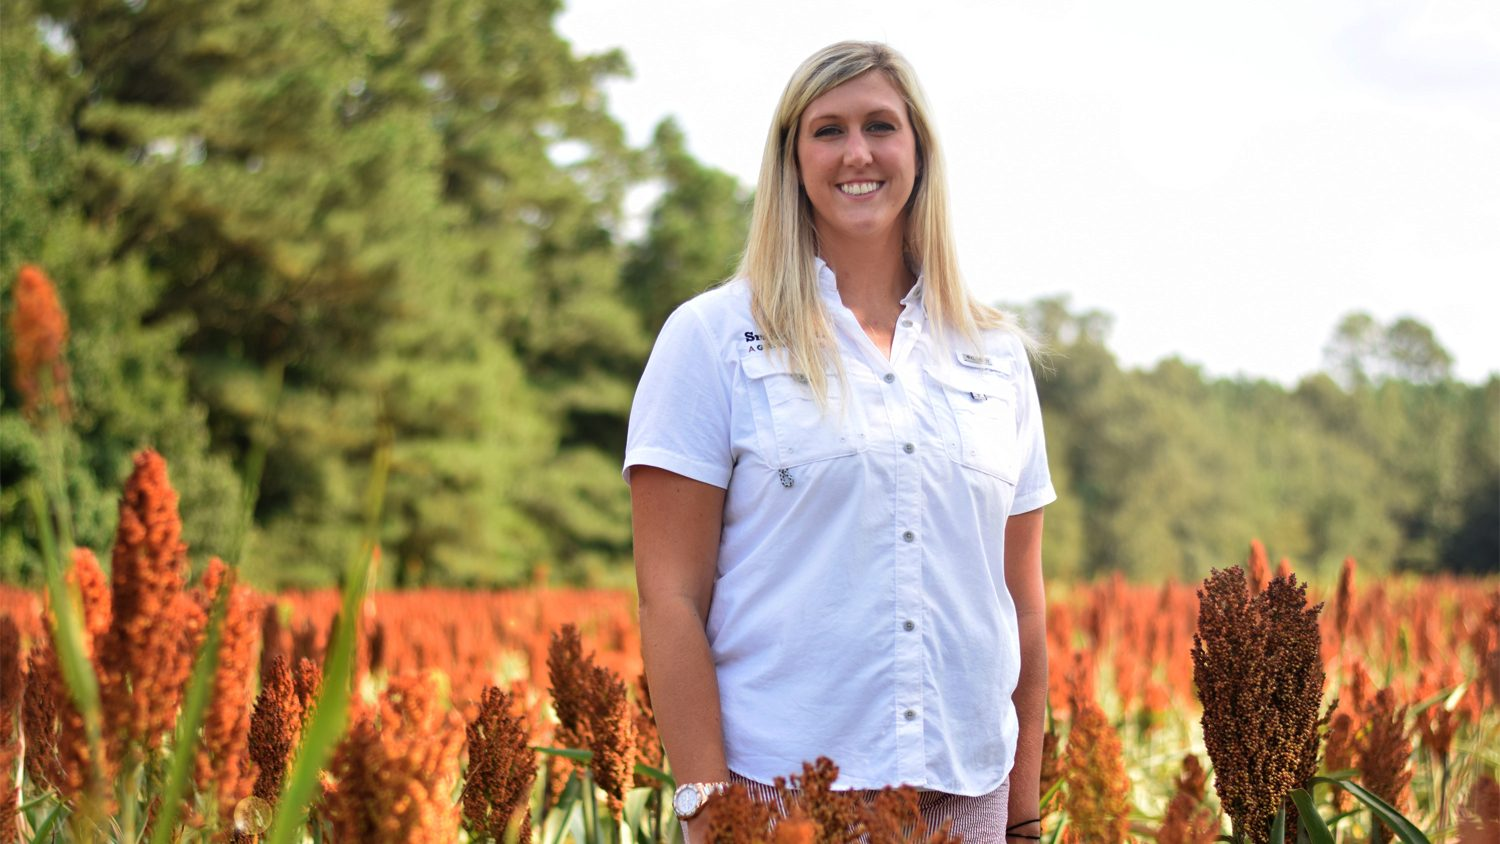 CALS alumni Rachel Grantham is now an agronomist at Smithfield.